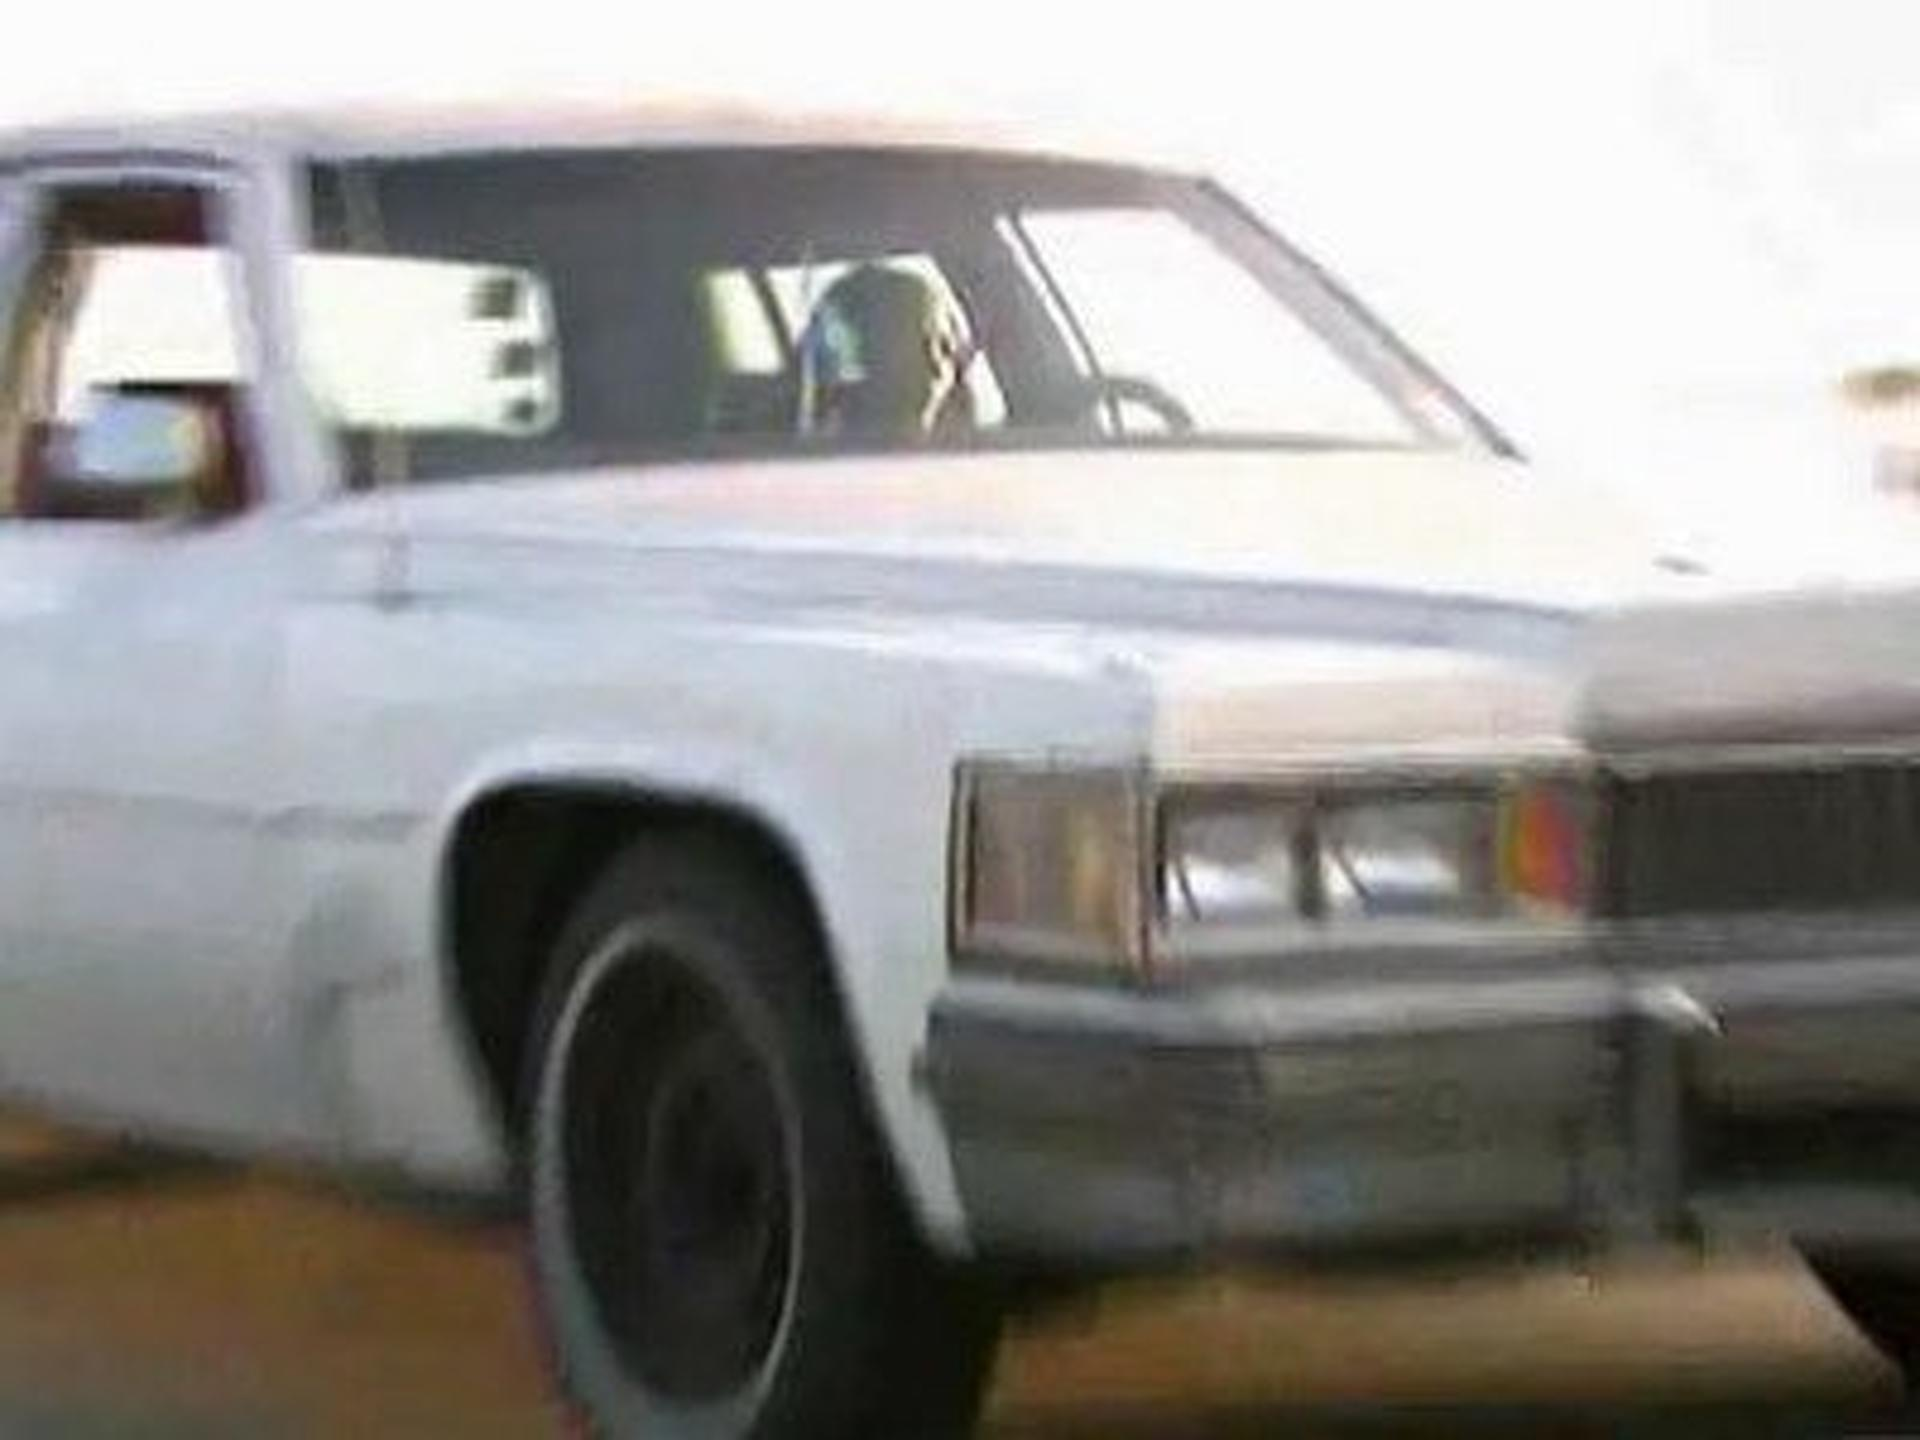 Niles Cadillac Sedan Deville Summary Pimp My Ride Season 1 1978 Episode 2 Guide